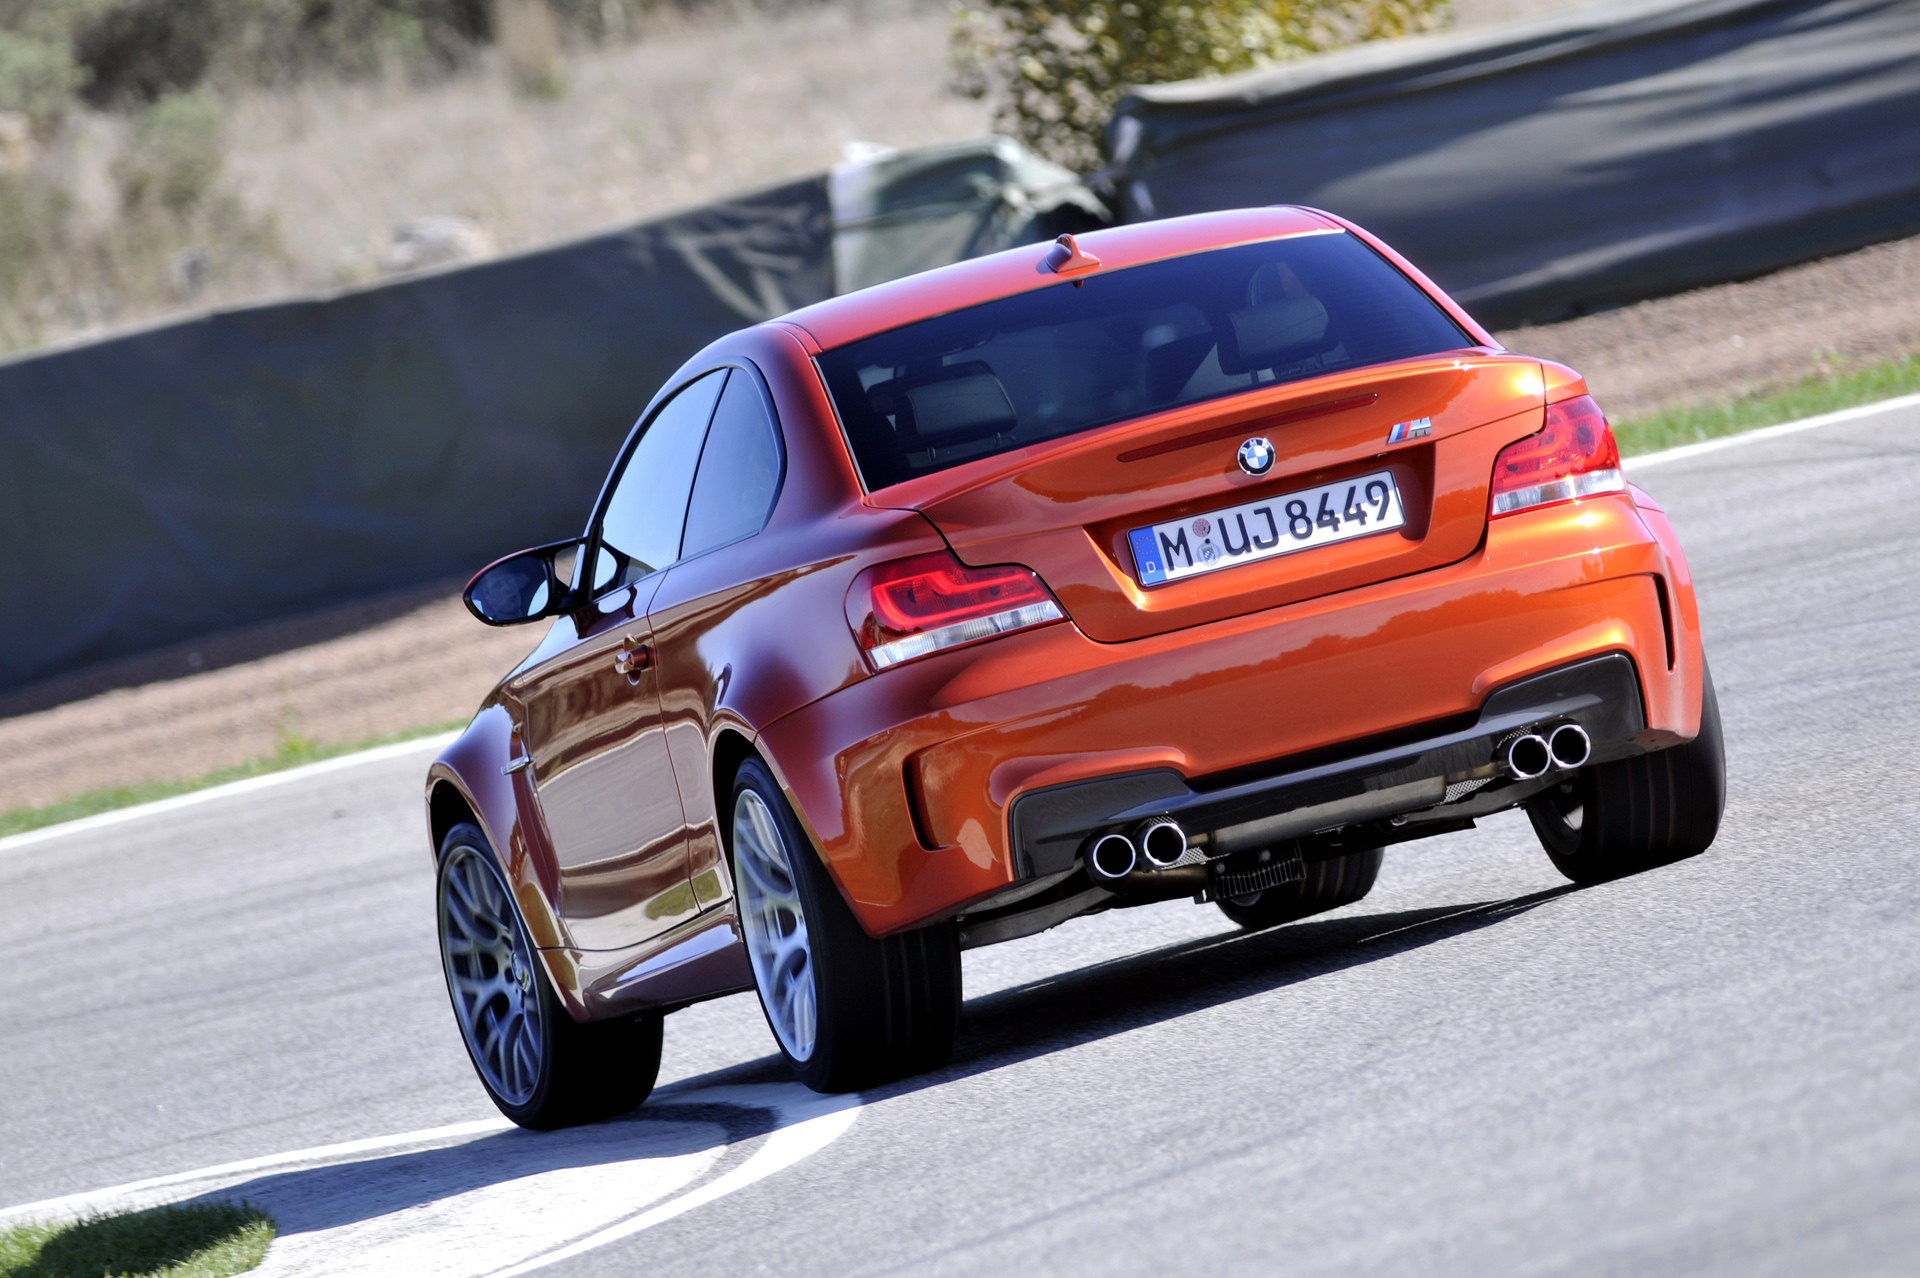 M Debuted Today - Bmw 1 series m coupe price